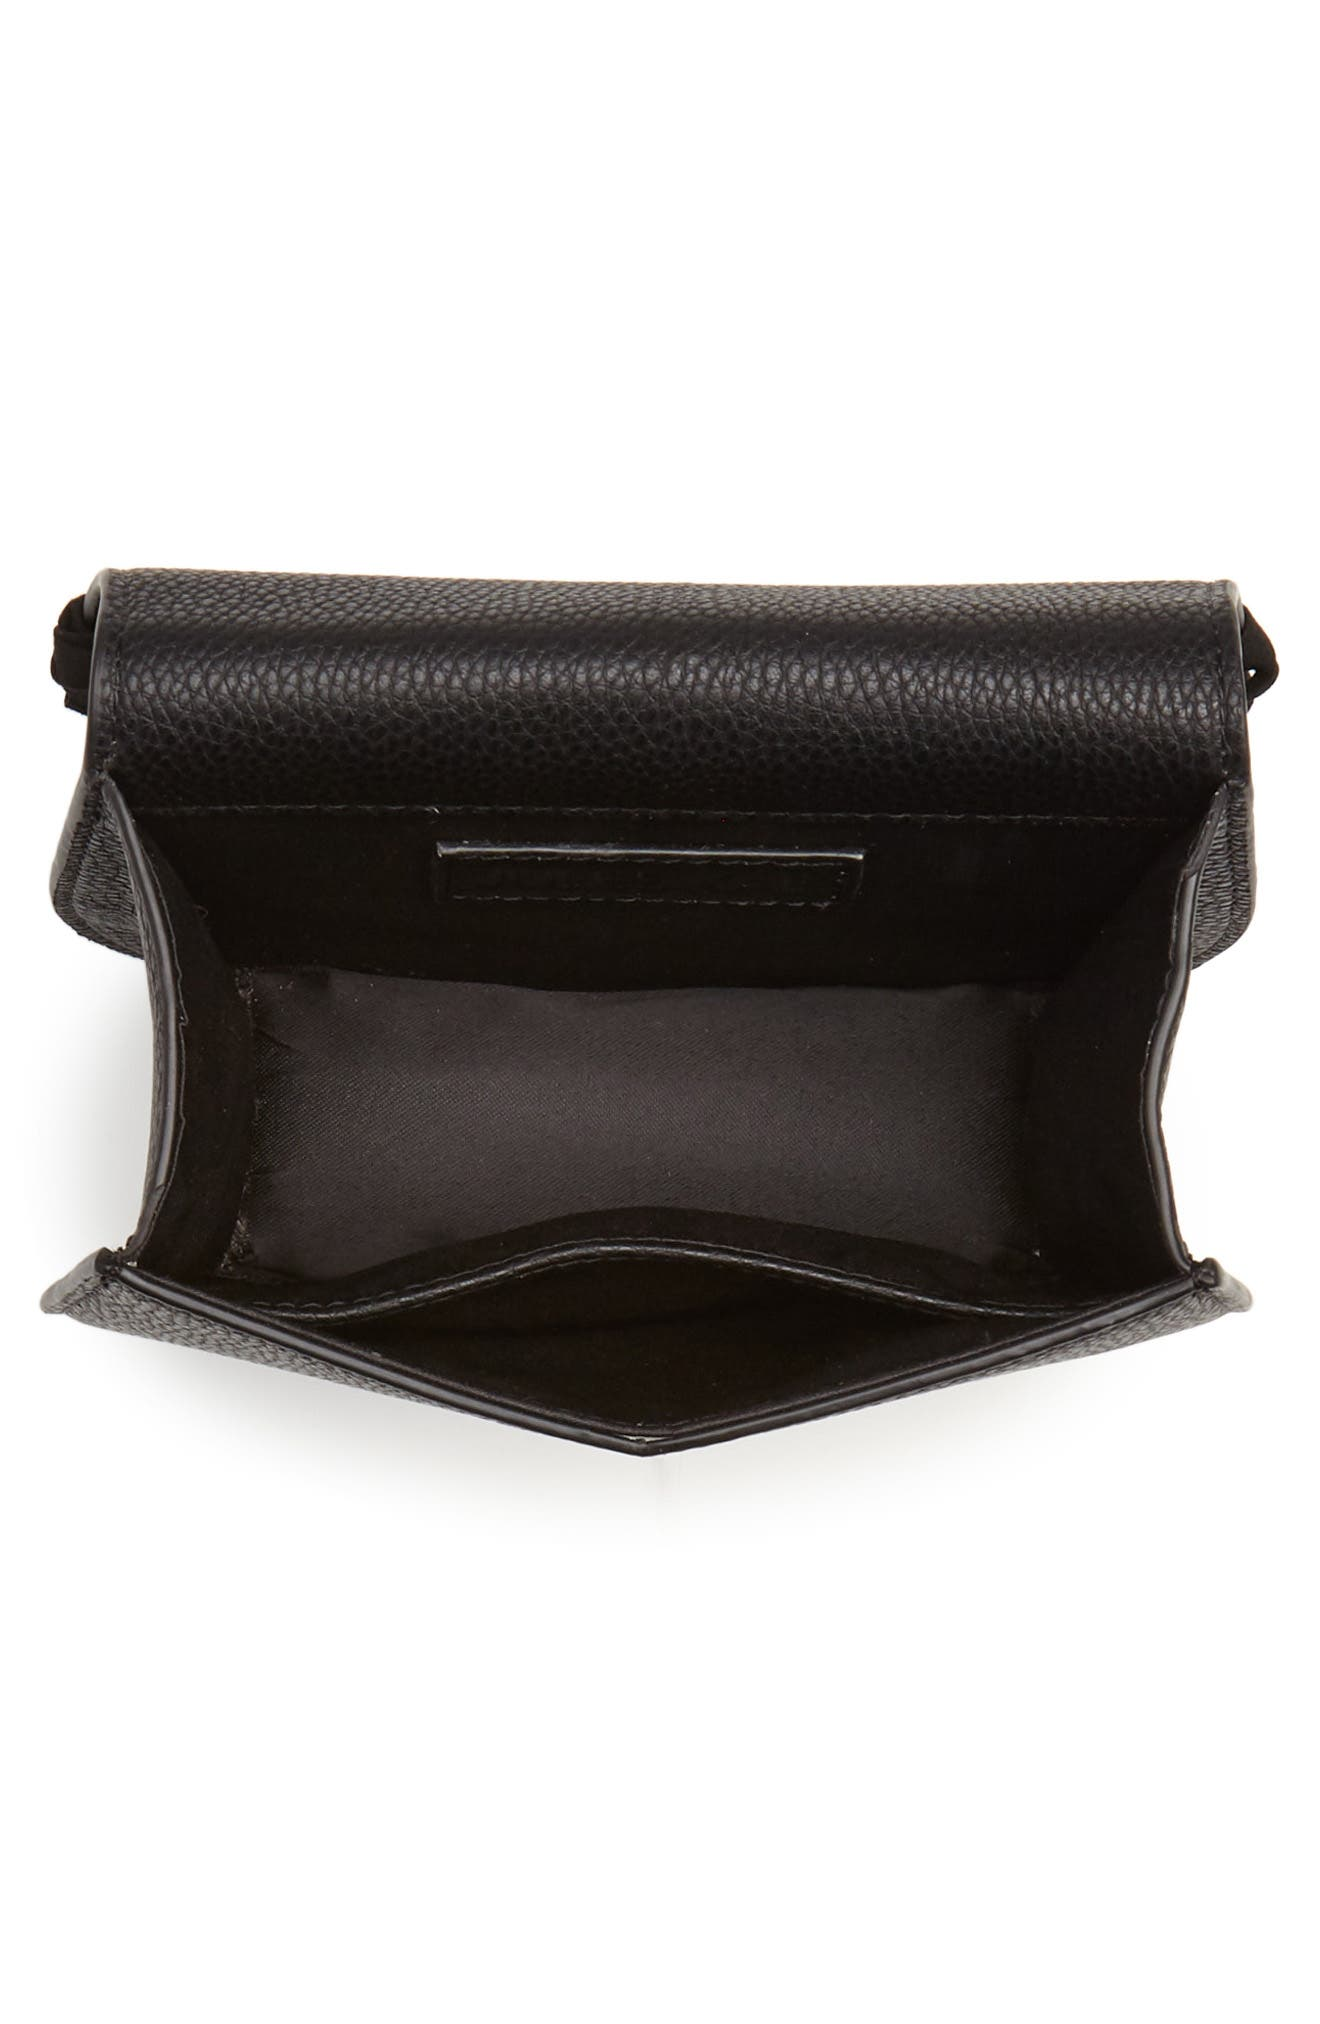 Mini Dylan Fringe Faux Leather Crossbody Bag,                             Alternate thumbnail 4, color,                             BLACK LEATHER